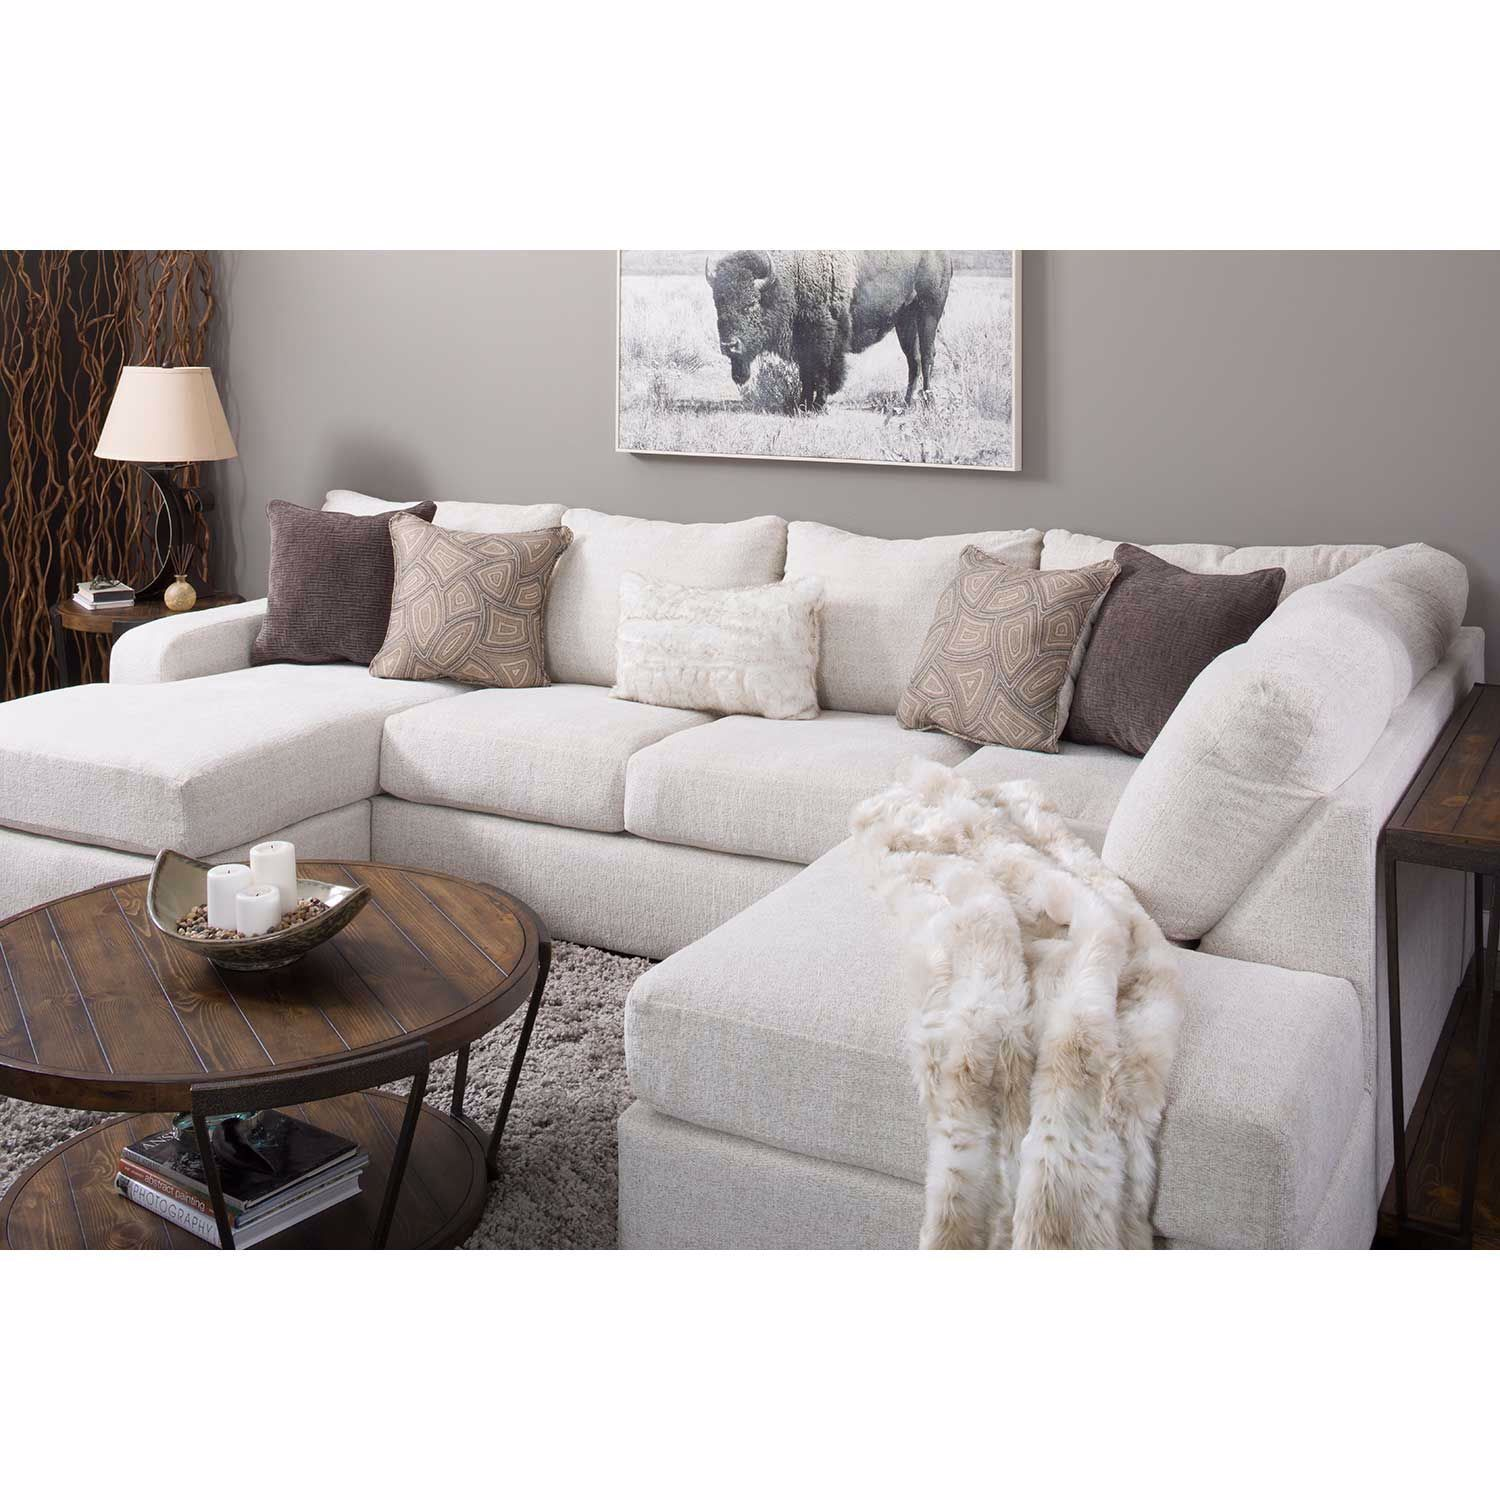 Picture of Amplify Beige 2 Piece RAF Sofa Chaise Sectional